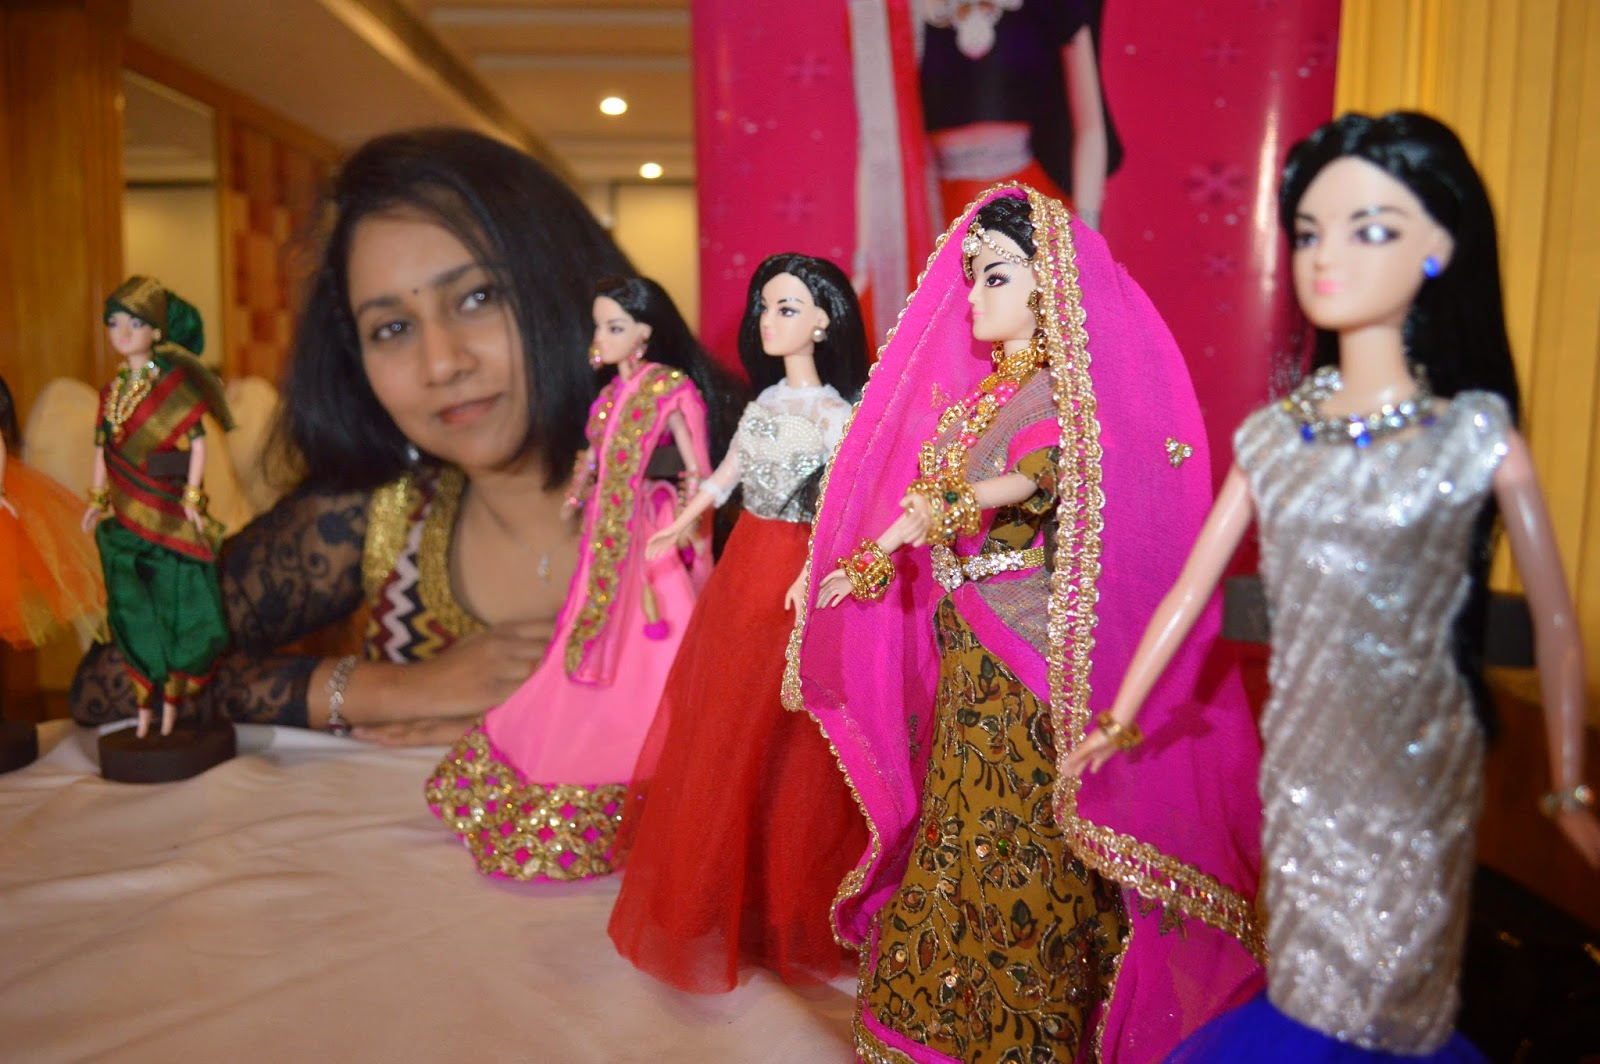 Kiyaa—India's First and Own 100% authentic Fashion Doll